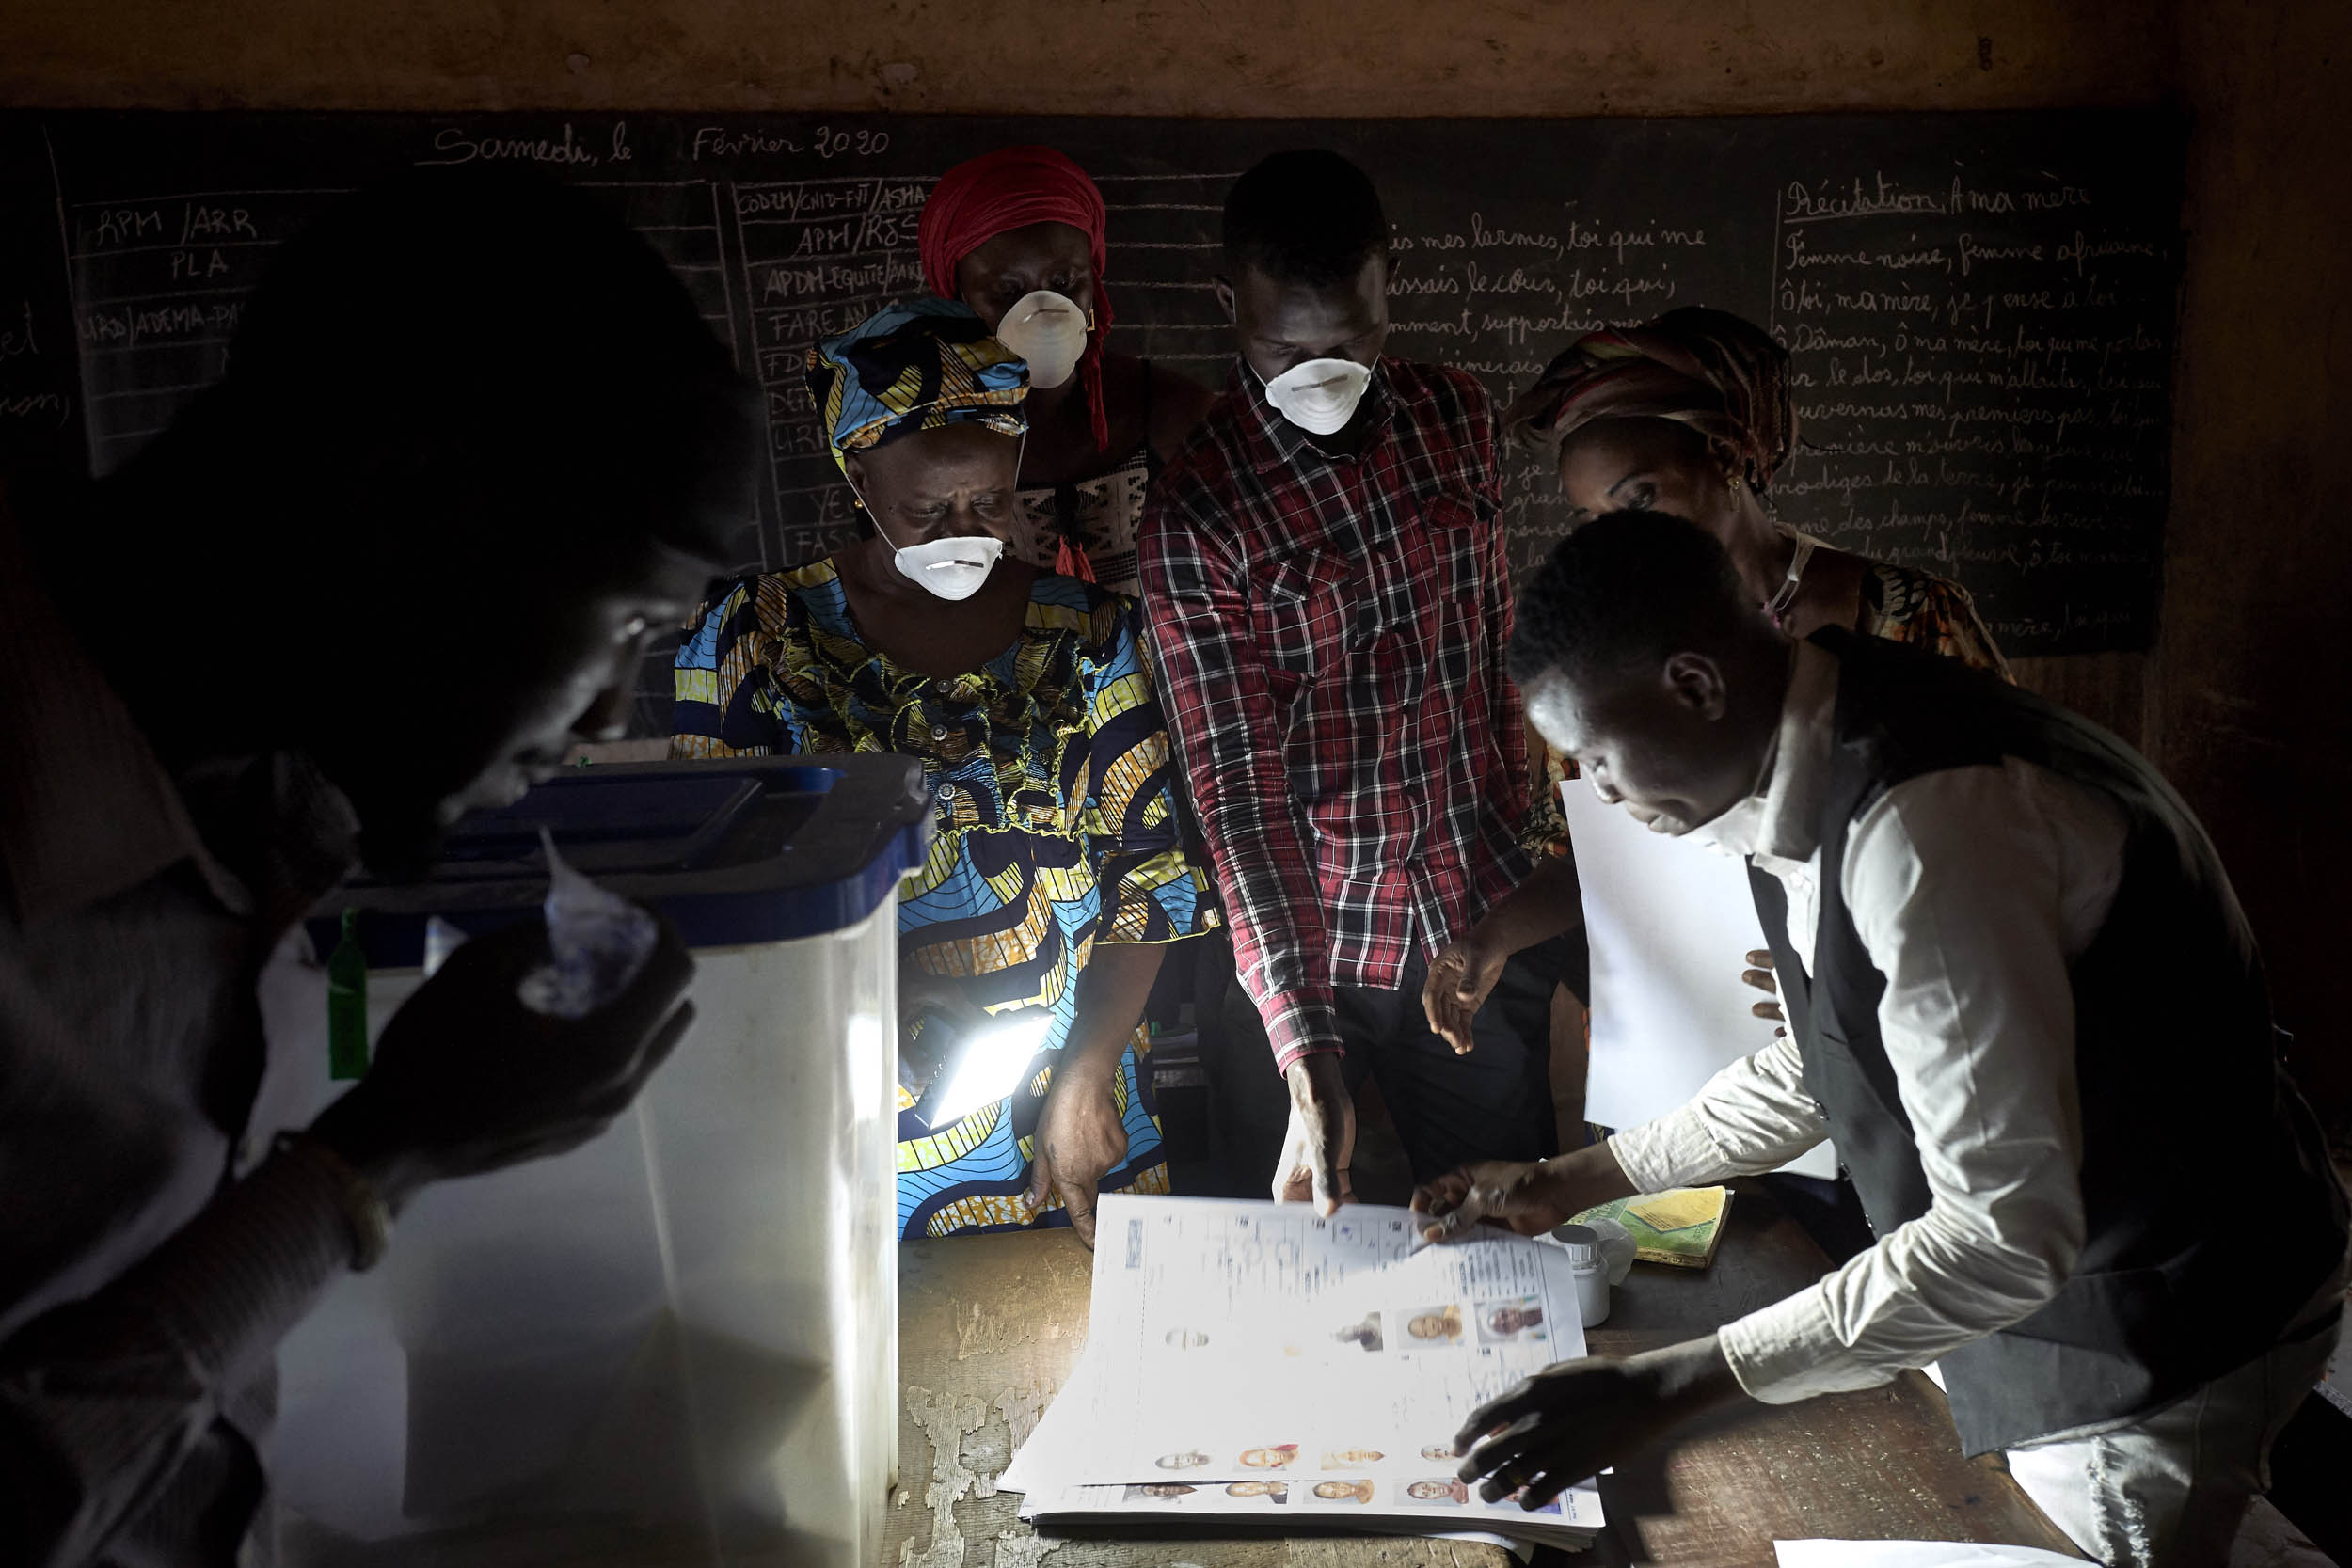 Electoral officials wearing masks as a preventive measure against the spread of the COVID-19 coronavirus count the votes at a polling station in Bamako on March 29, 2020. - Malians headed to the polls on March 29, 2020, for a long-delayed parliamentary election just hours after the country recorded its first COVID-19 coronavirus death and with the leading opposition figure kidnapped and believed to be in the hands of jihadists. Photo: Michele Cattani / AFP